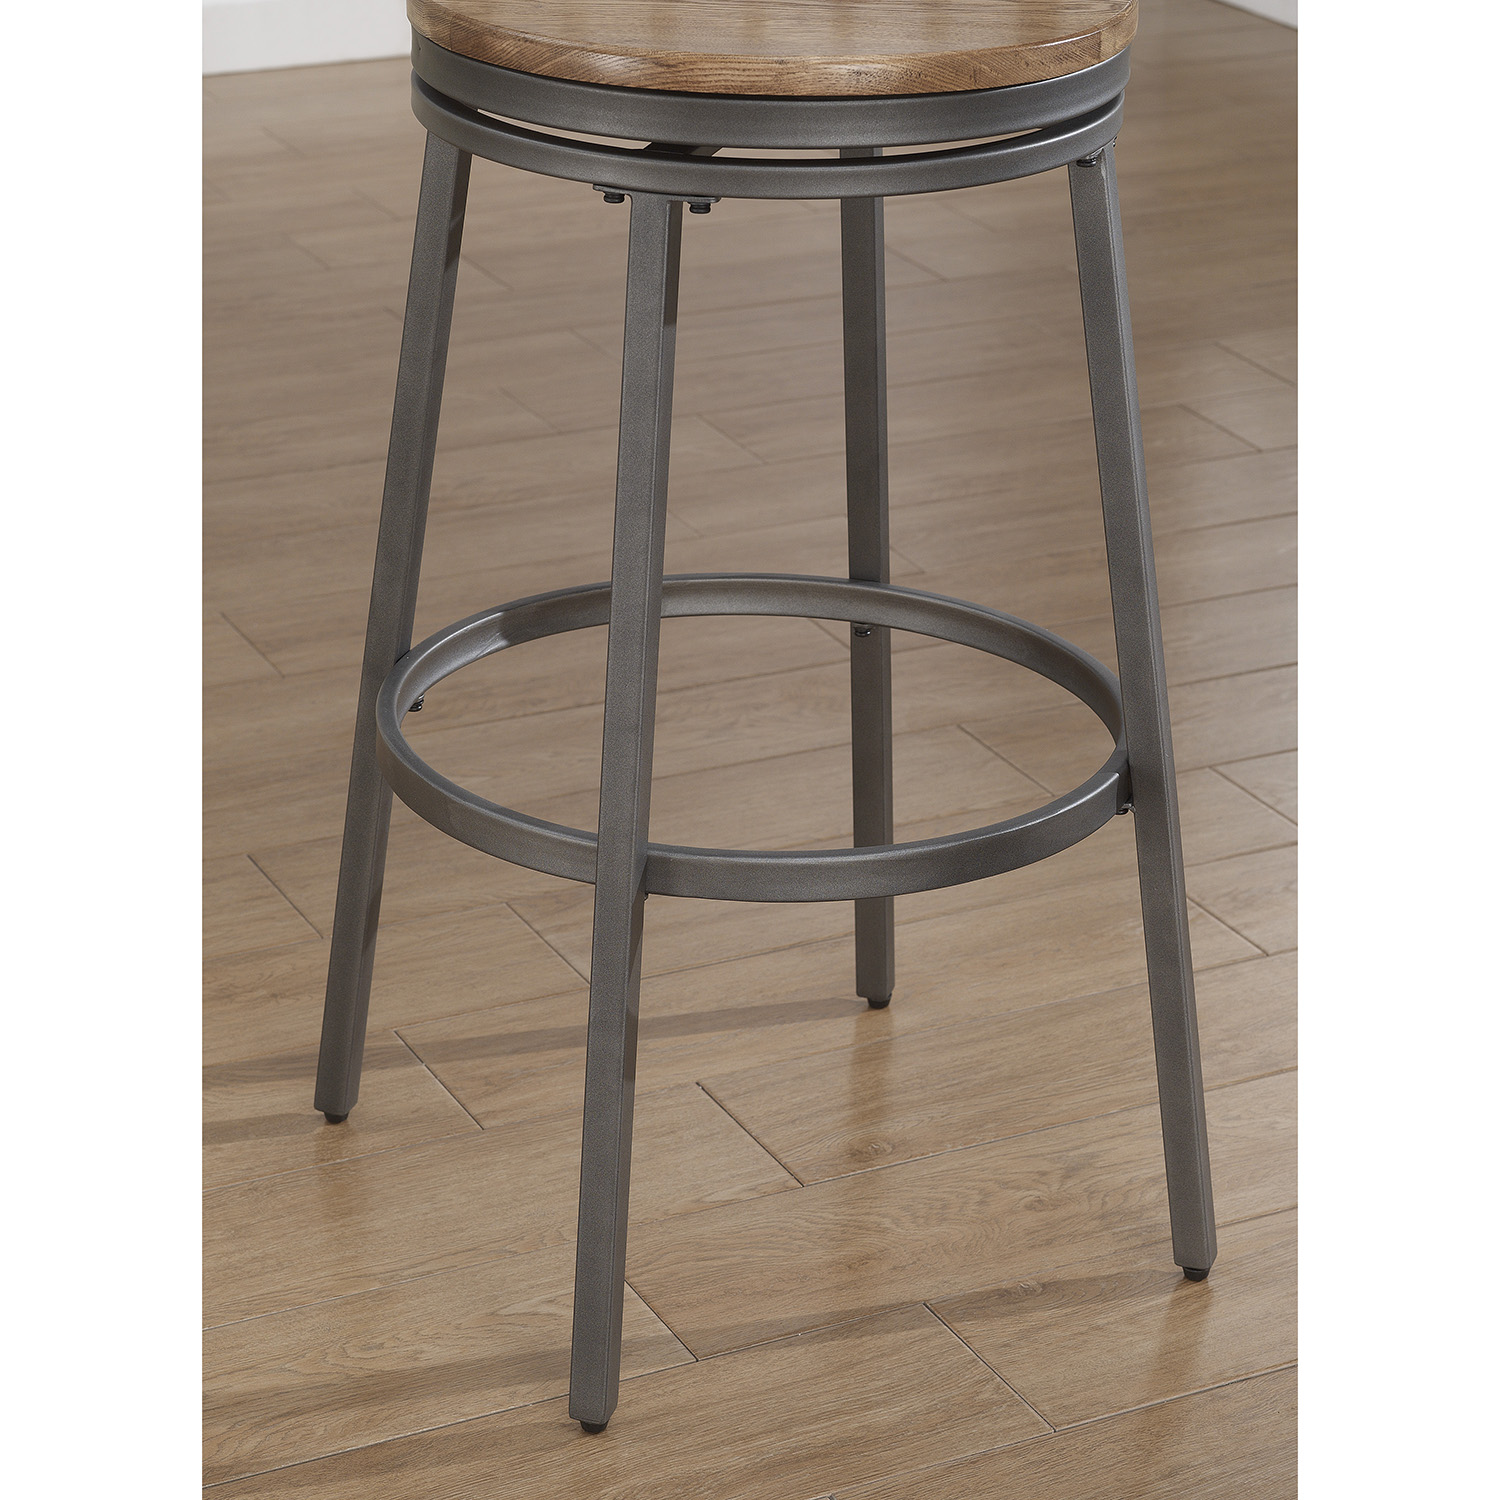 Stockton Backless Bar Stool - Slate Gray Frame, Golden Oak Seat - AW-B1-100-30W